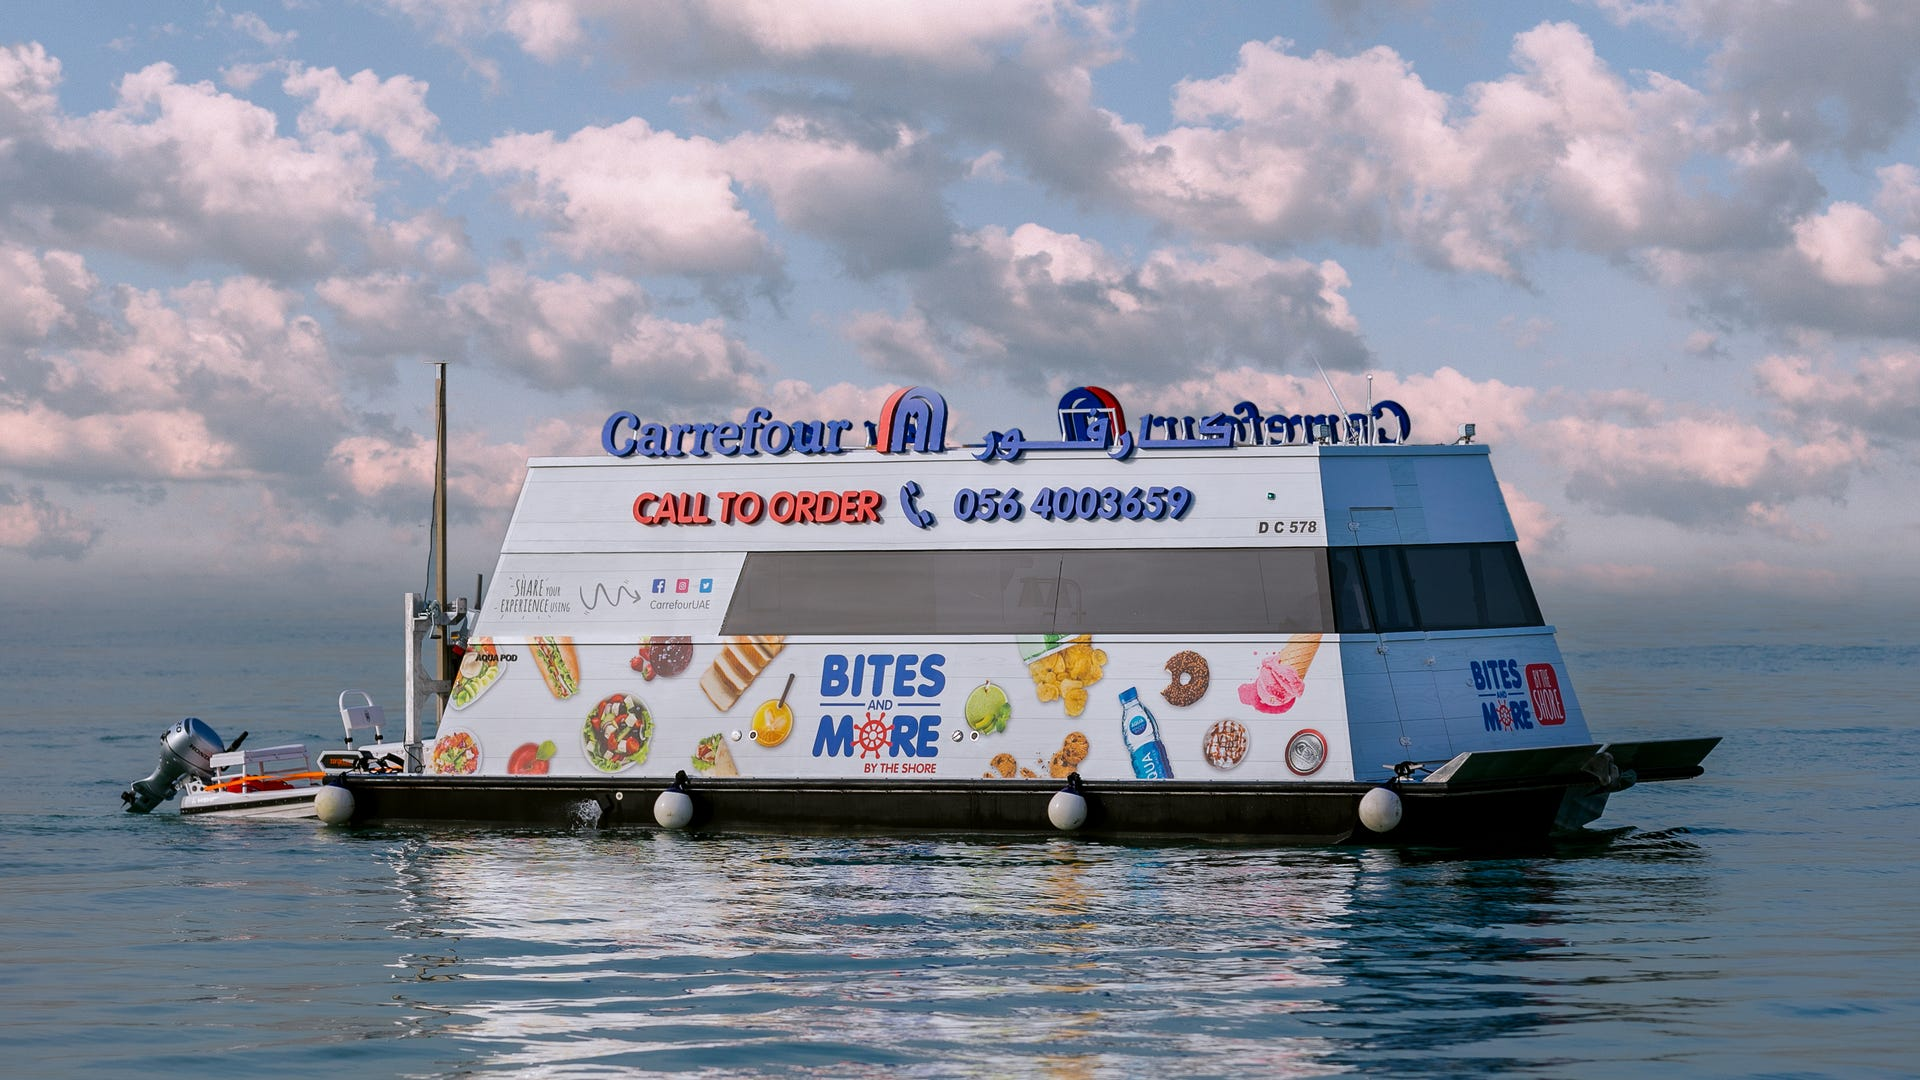 New supermarket on water is accessible to jet skis and yachts